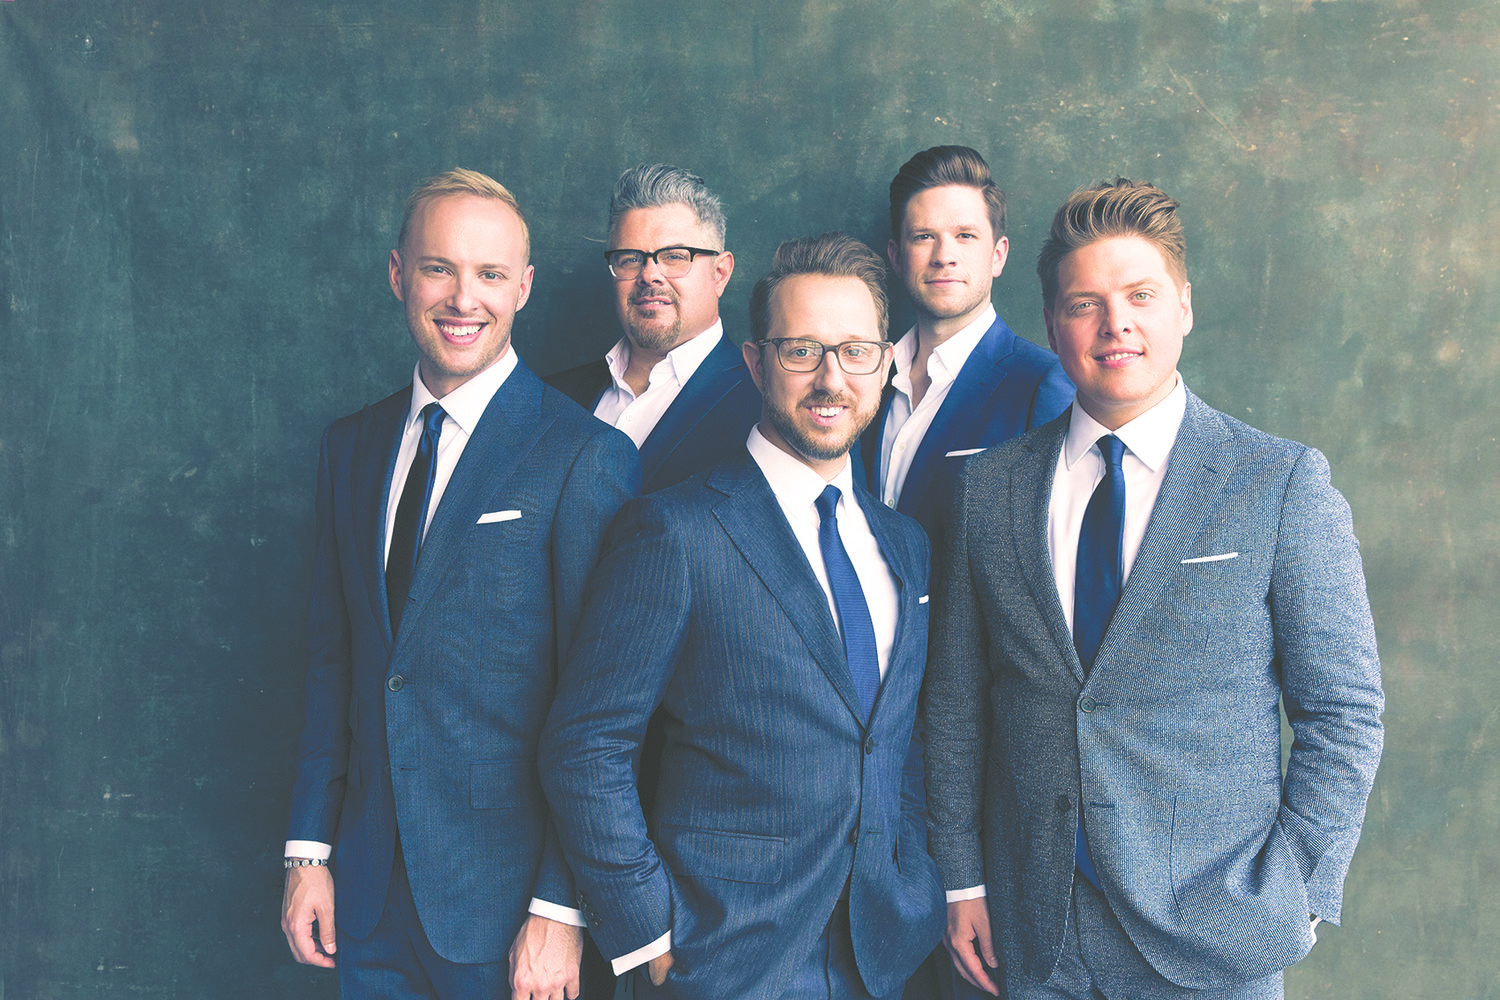 The Christian singing group Veritas will be performing at Jasper's First Baptist Church on Sunday, Oct. 14, at 6 p.m.